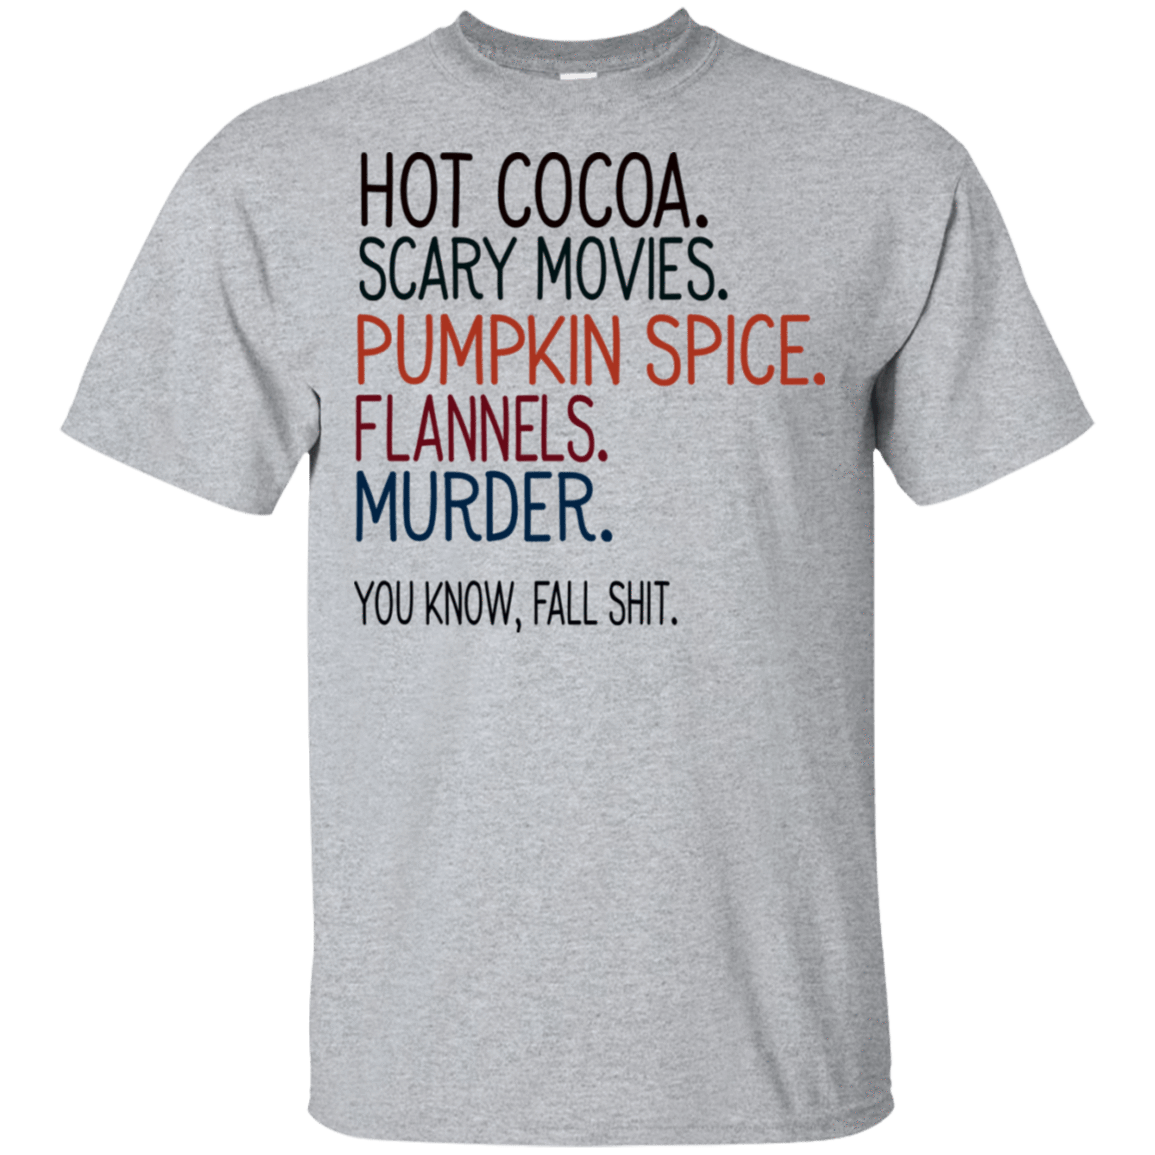 Hot Cocoa Scary Movies Pumpkin Spice Flannels Murder You Know Fall Shit T-Shirts, Hoodie, Tank 22-115-78811043-254 - Tee Ript